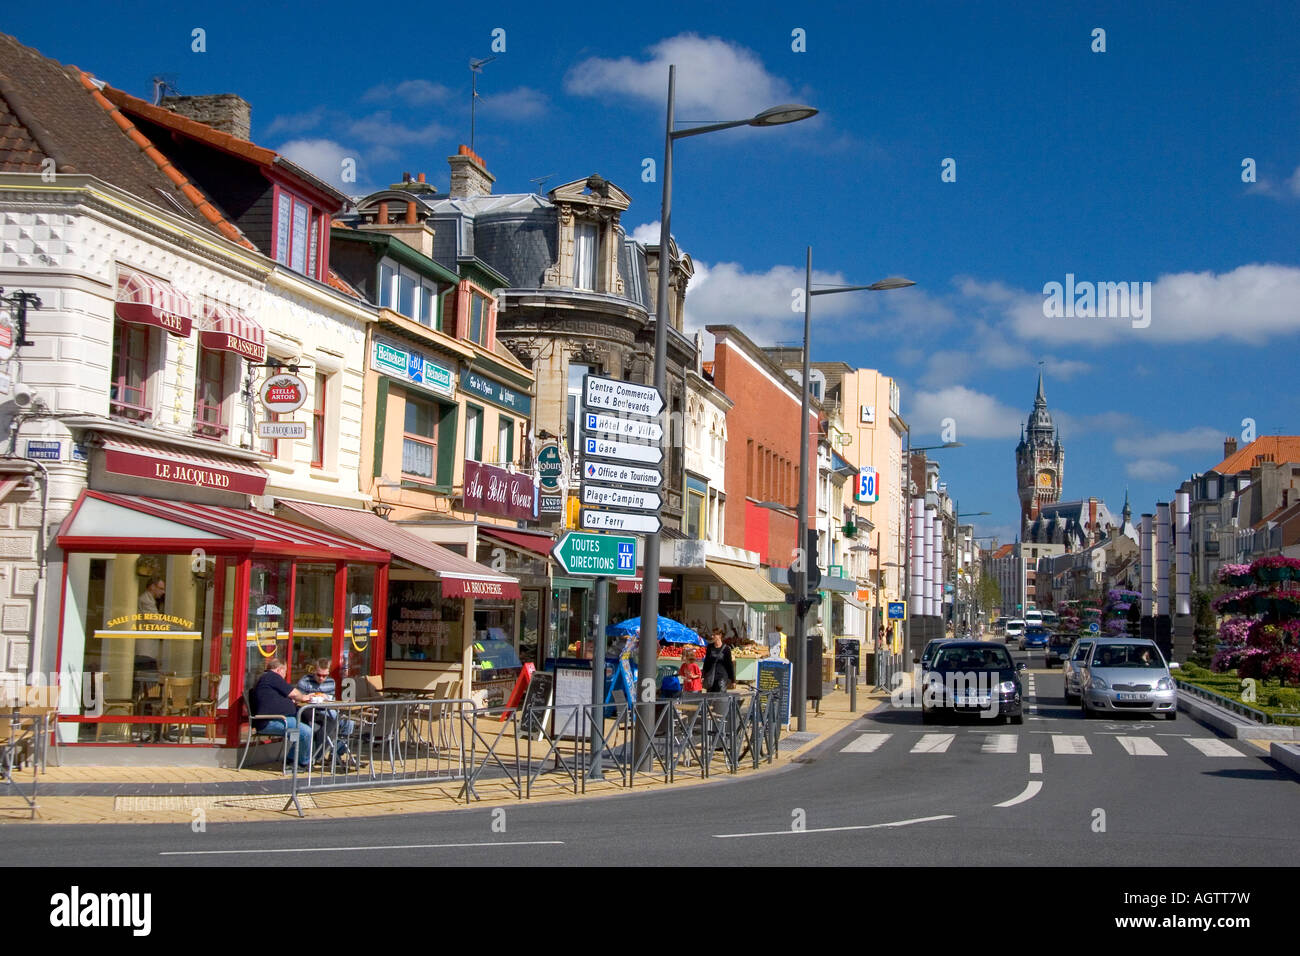 street scene at the city of calais in the departmet of pas de calais stock photo 14283228 alamy. Black Bedroom Furniture Sets. Home Design Ideas